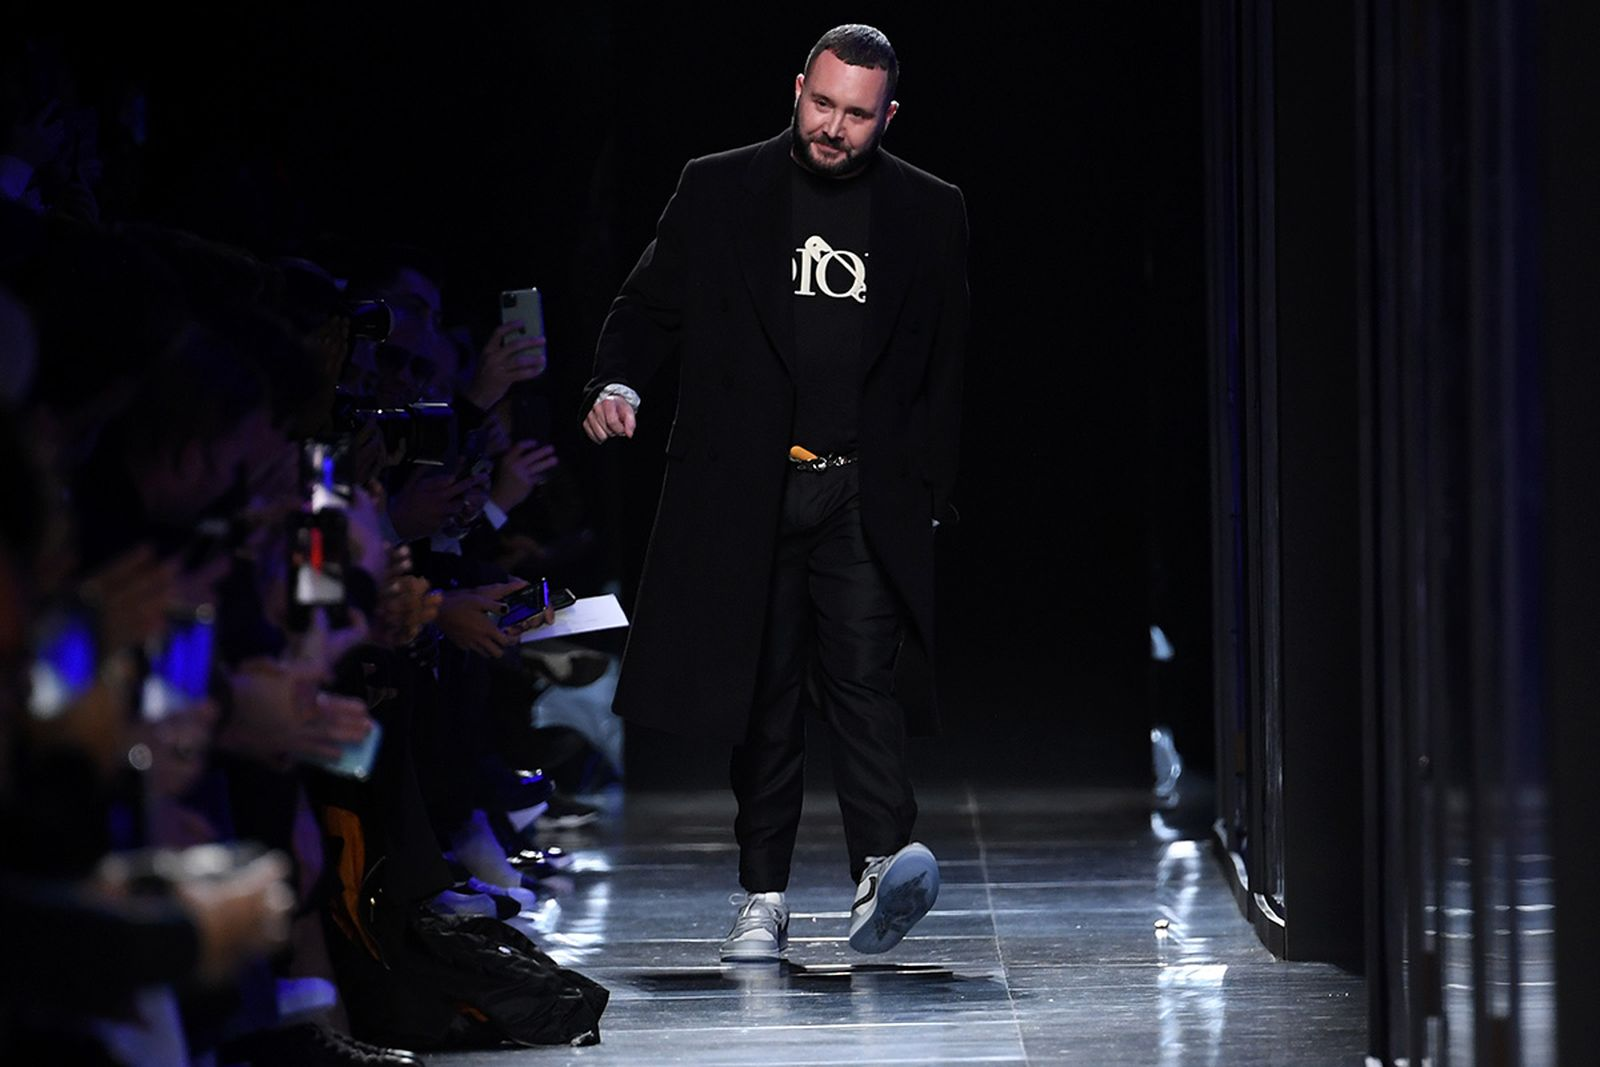 Fashion designer Kim Jones walks the runway during the Dior Homme Menswear Fall/Winter 2020-2021 show